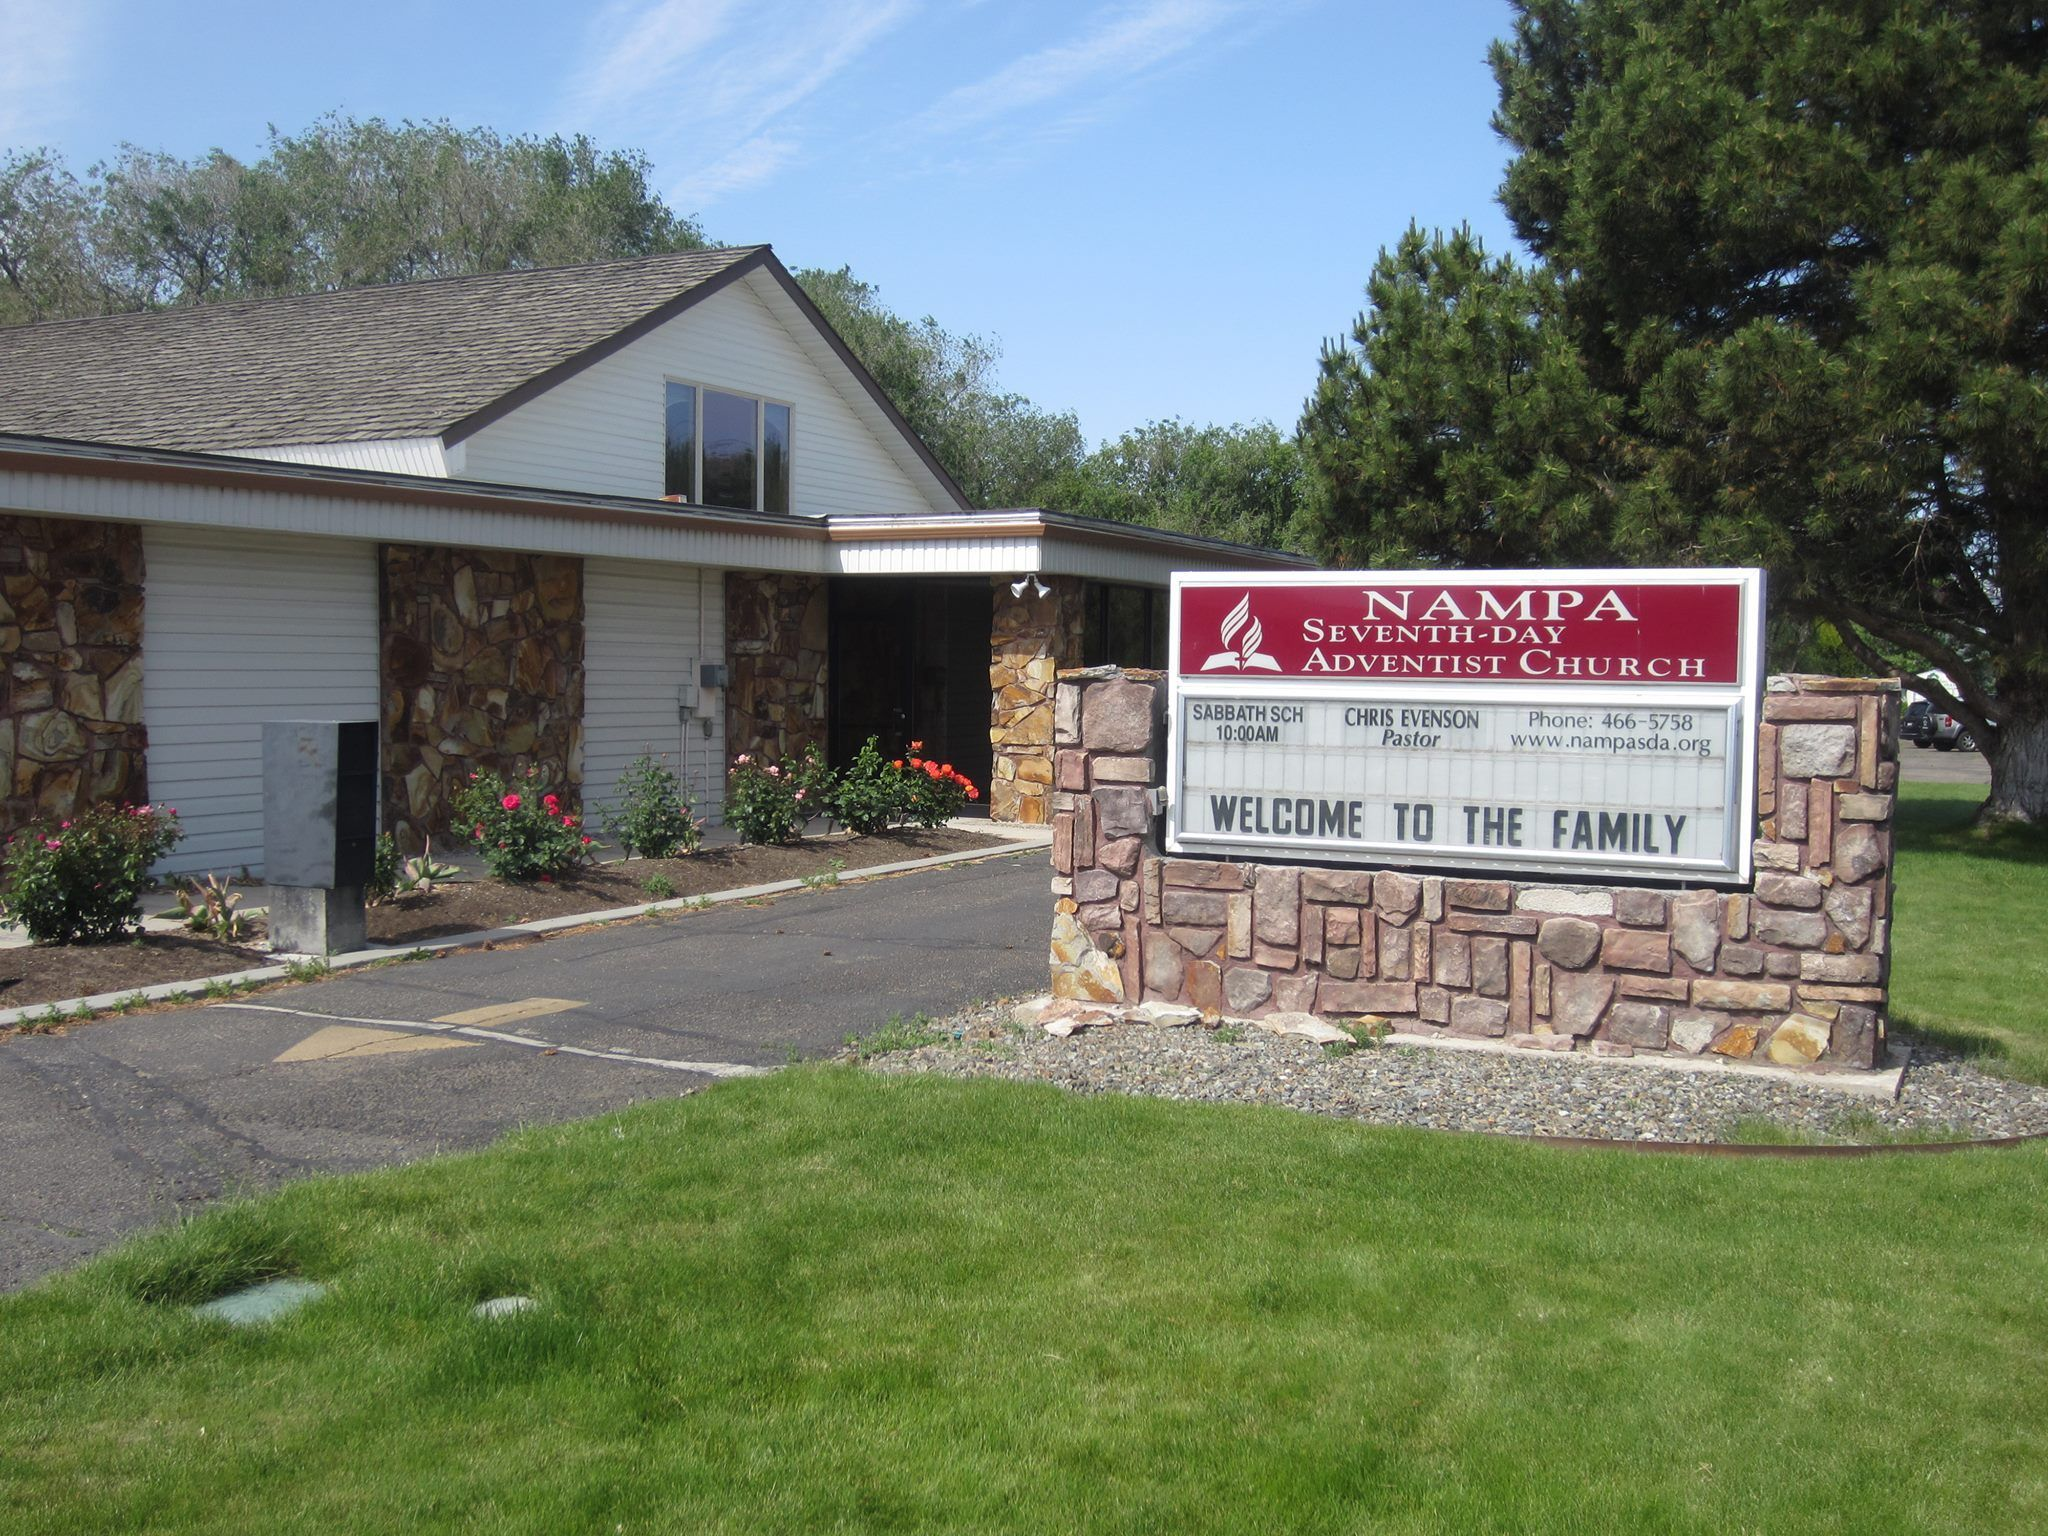 Seventh Day Adventist-Nampa